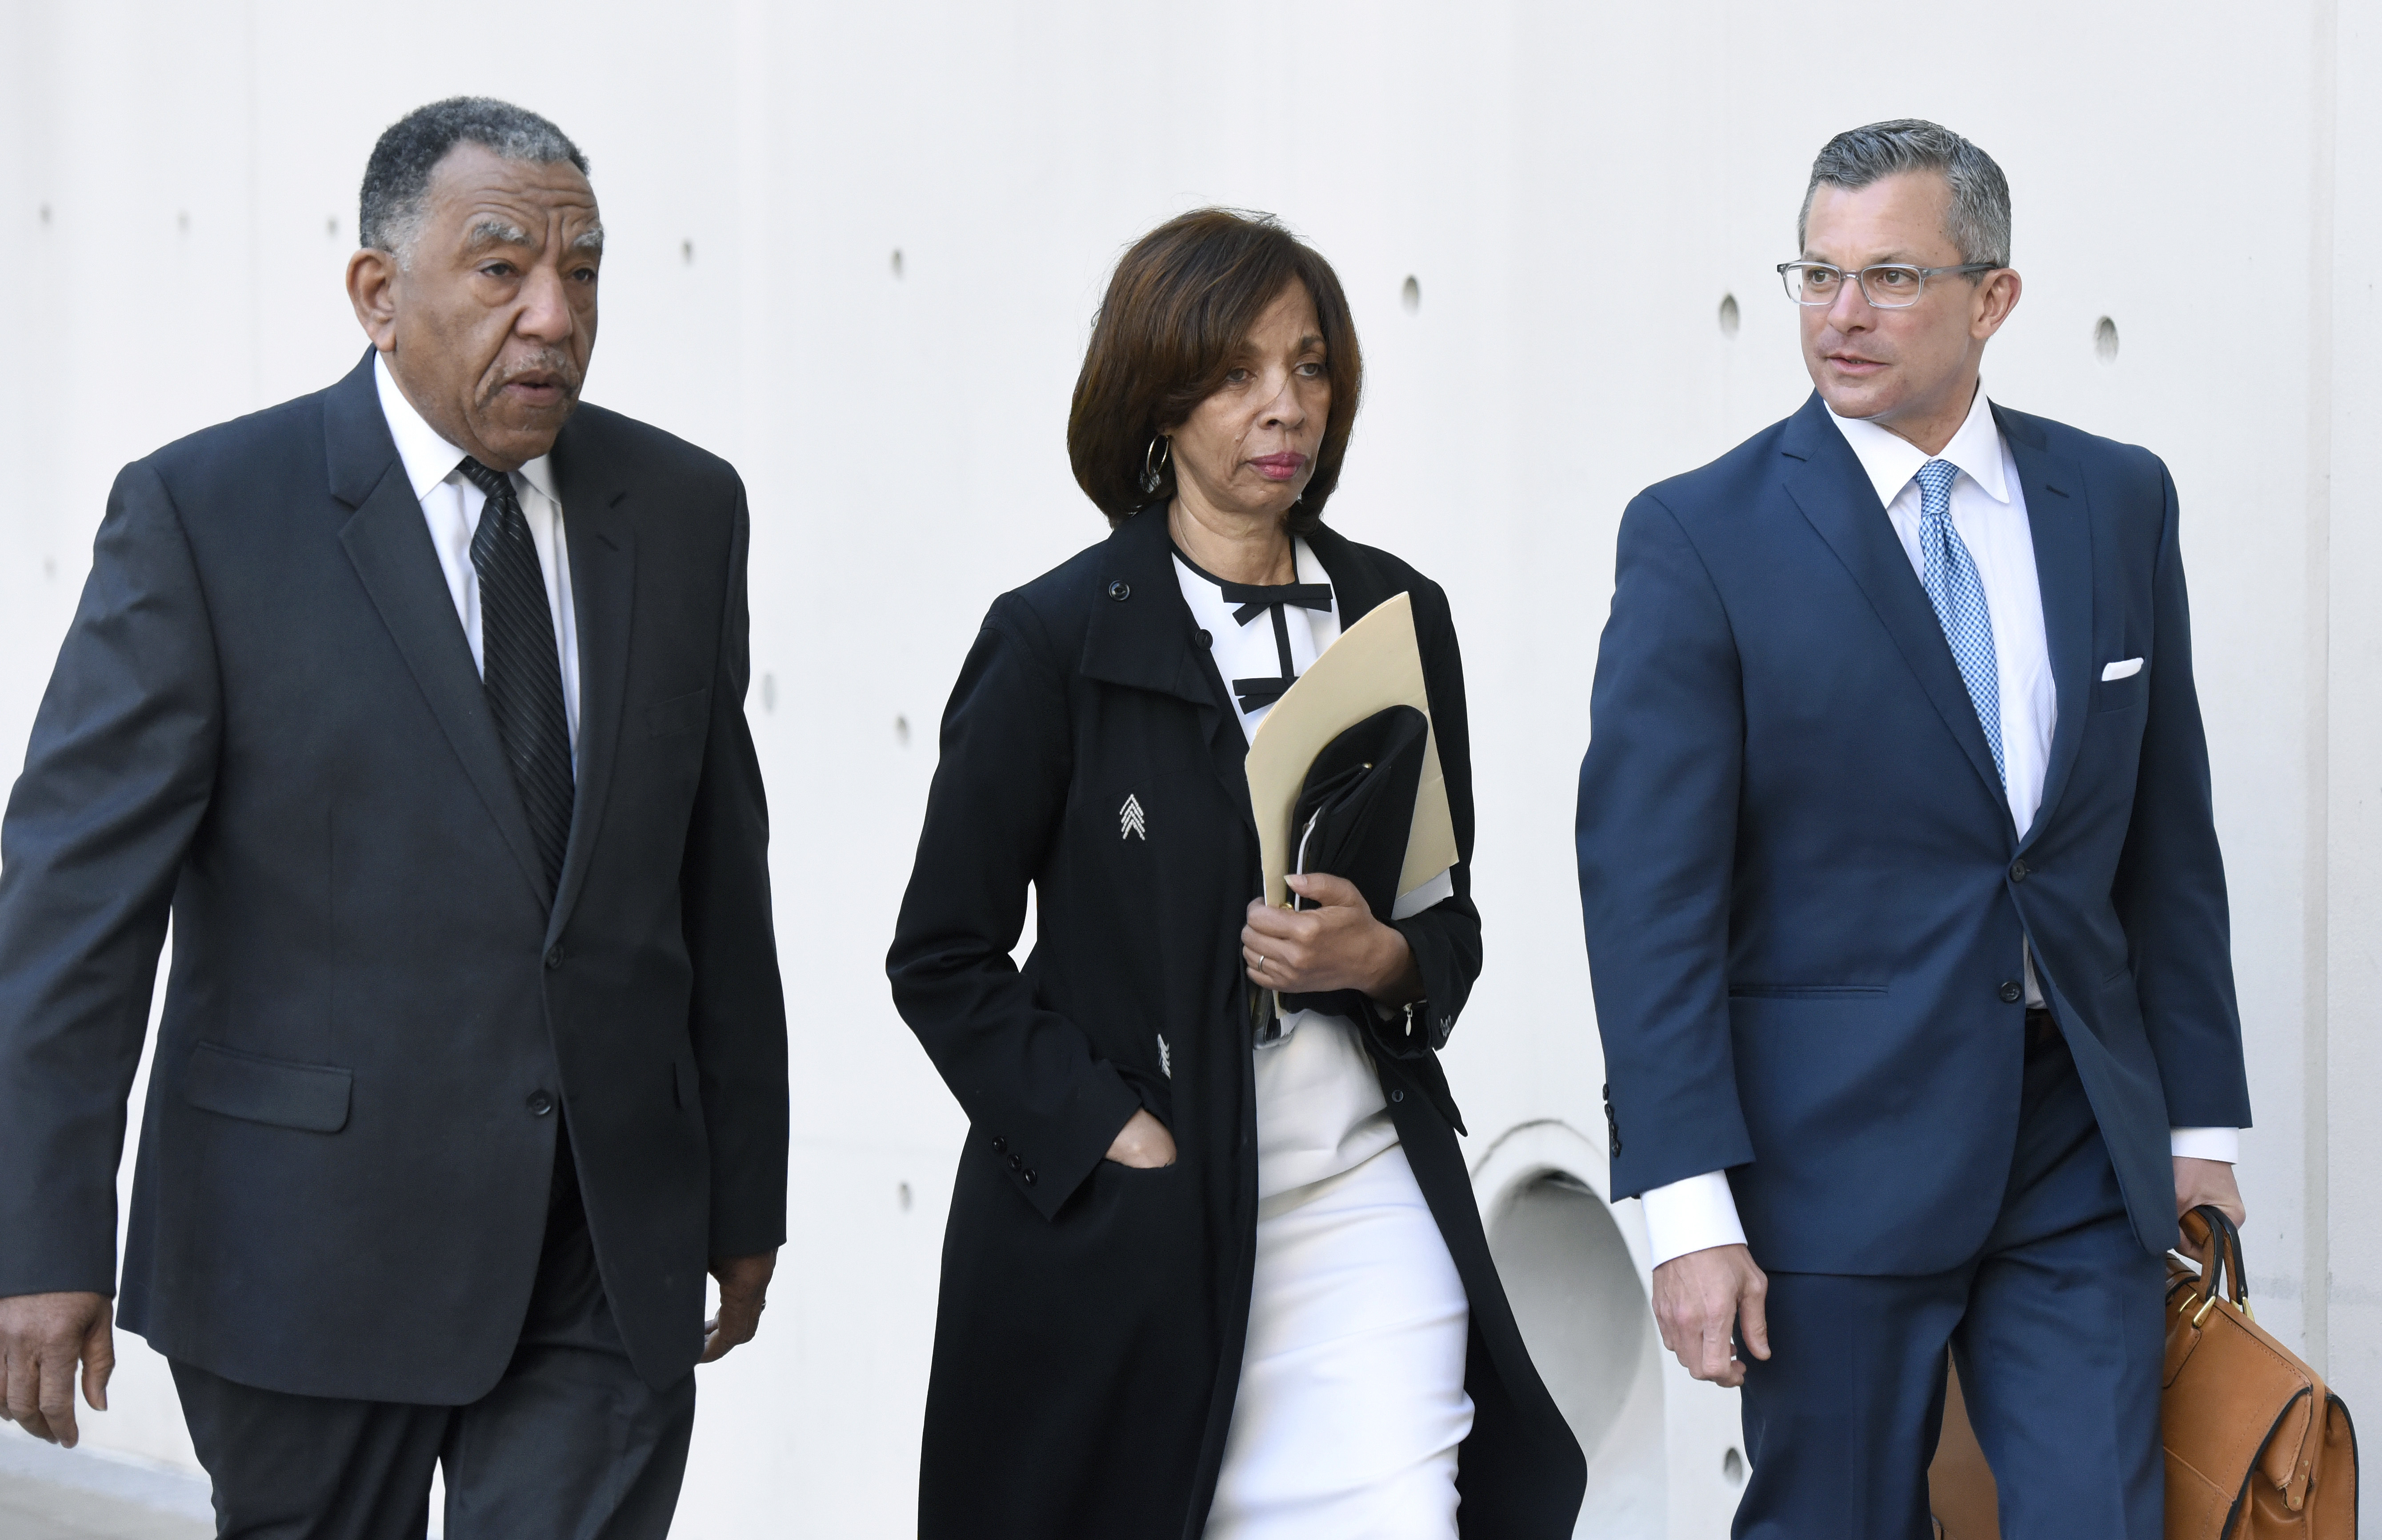 Former Baltimore mayor Catherine Pugh, center, and her attorney Steven Silverman, right, arrive for a sentencing hearing at U.S. District Court in Baltimore on on Feb. 27, 2020.